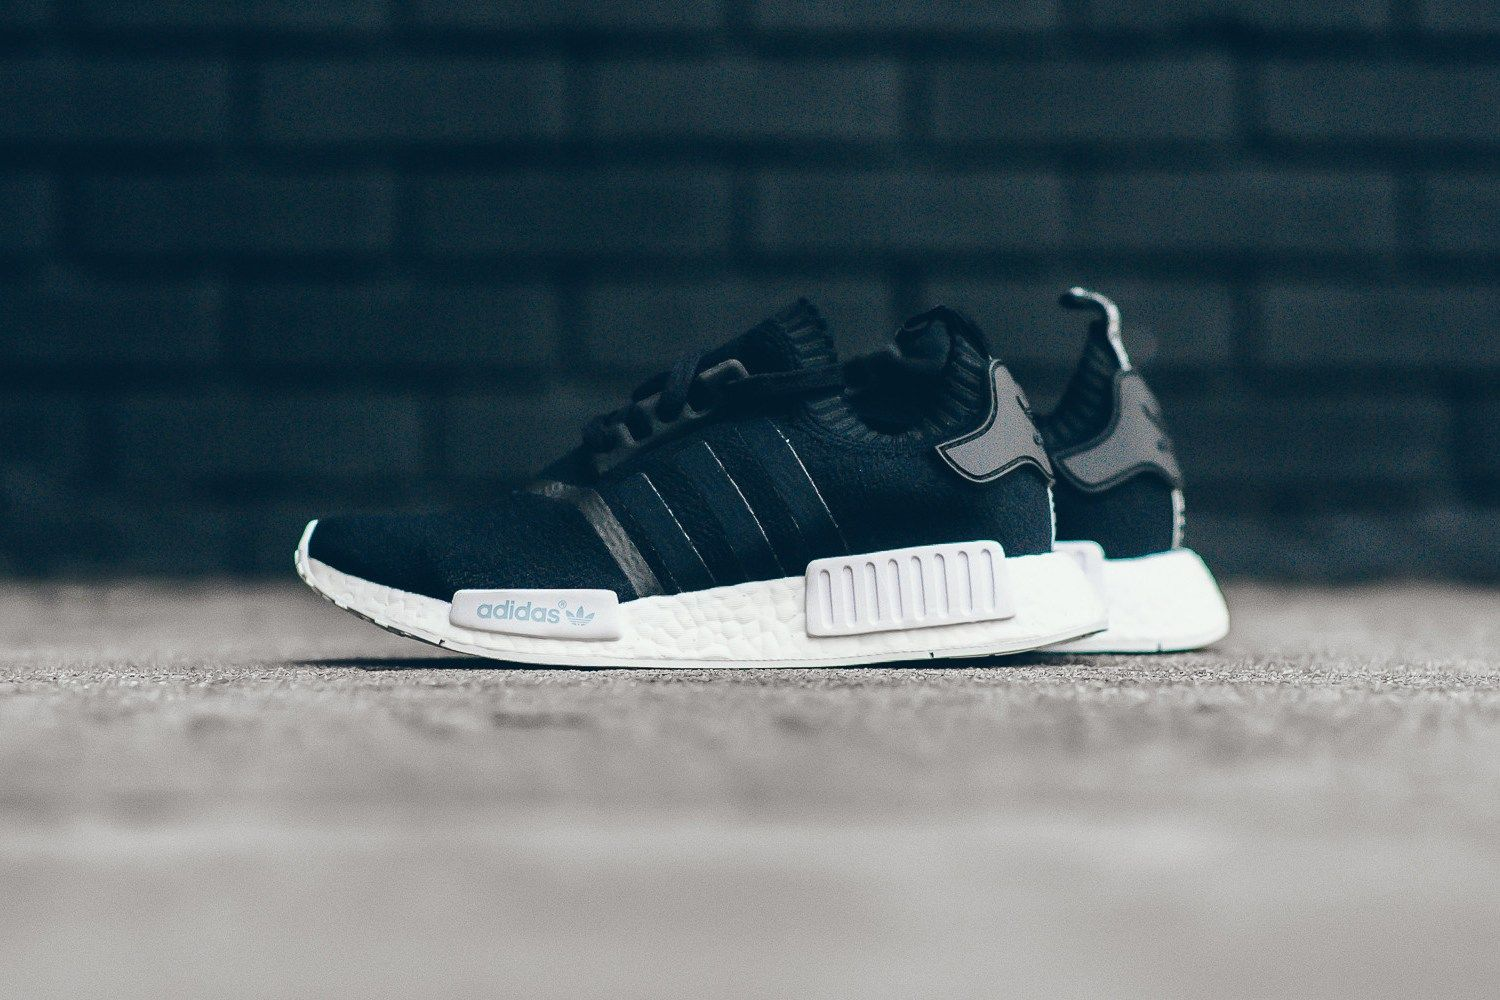 4ddb837b4 adidas Originals Drapes the NMD R1 in a Tonal Black Upper